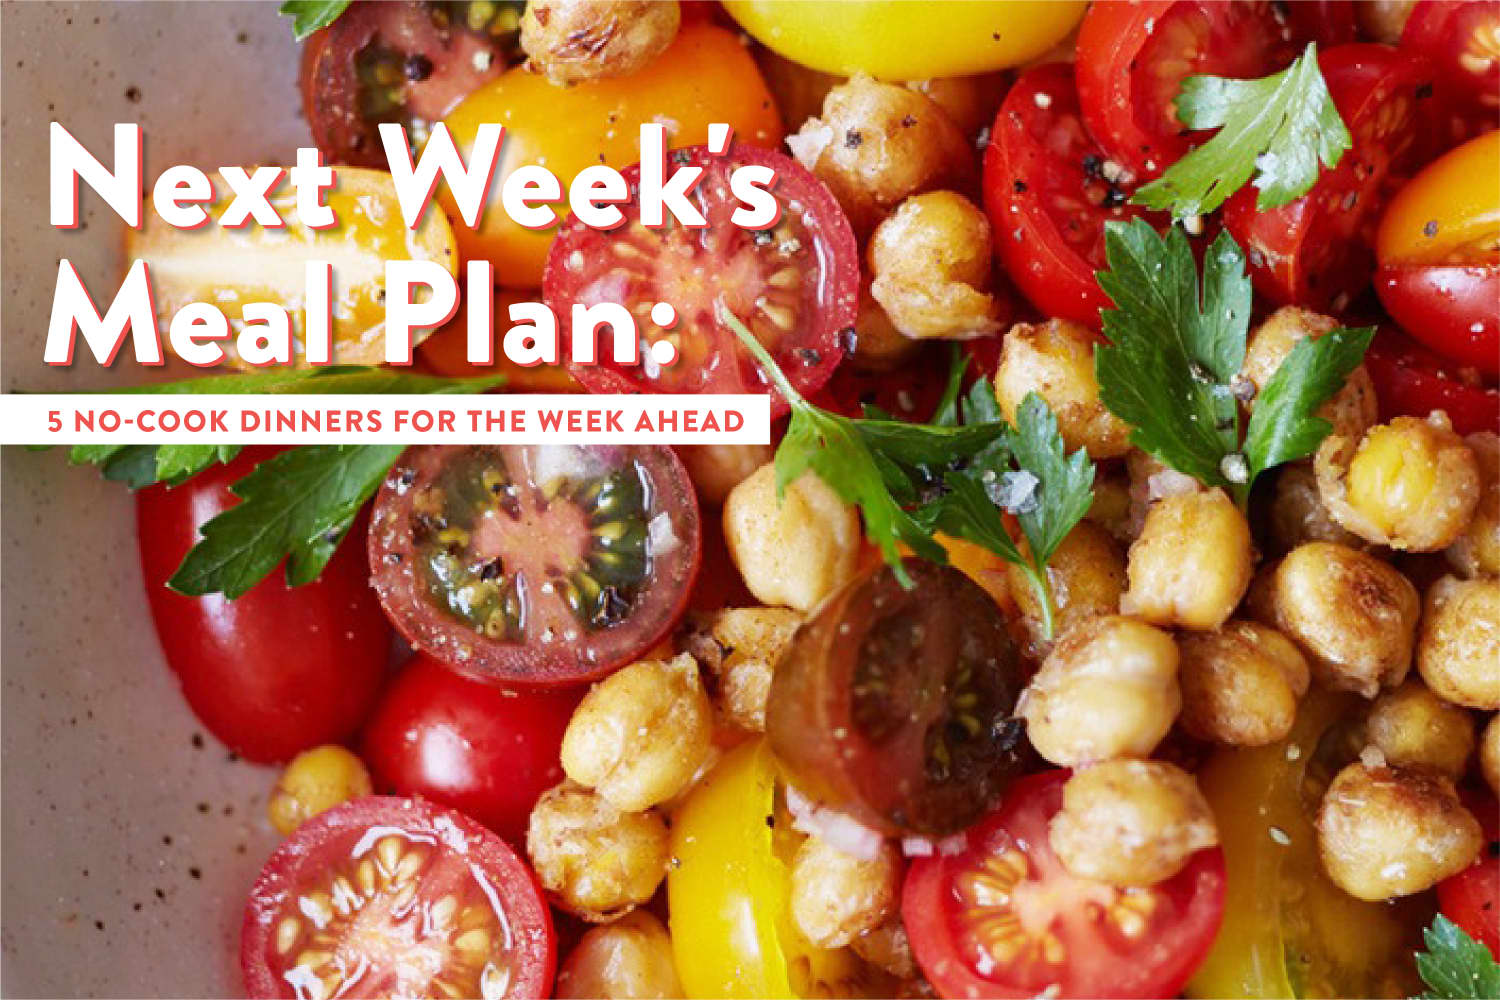 Next Week's Meal Plan: 5 No-Cook Dinners for the Week Ahead